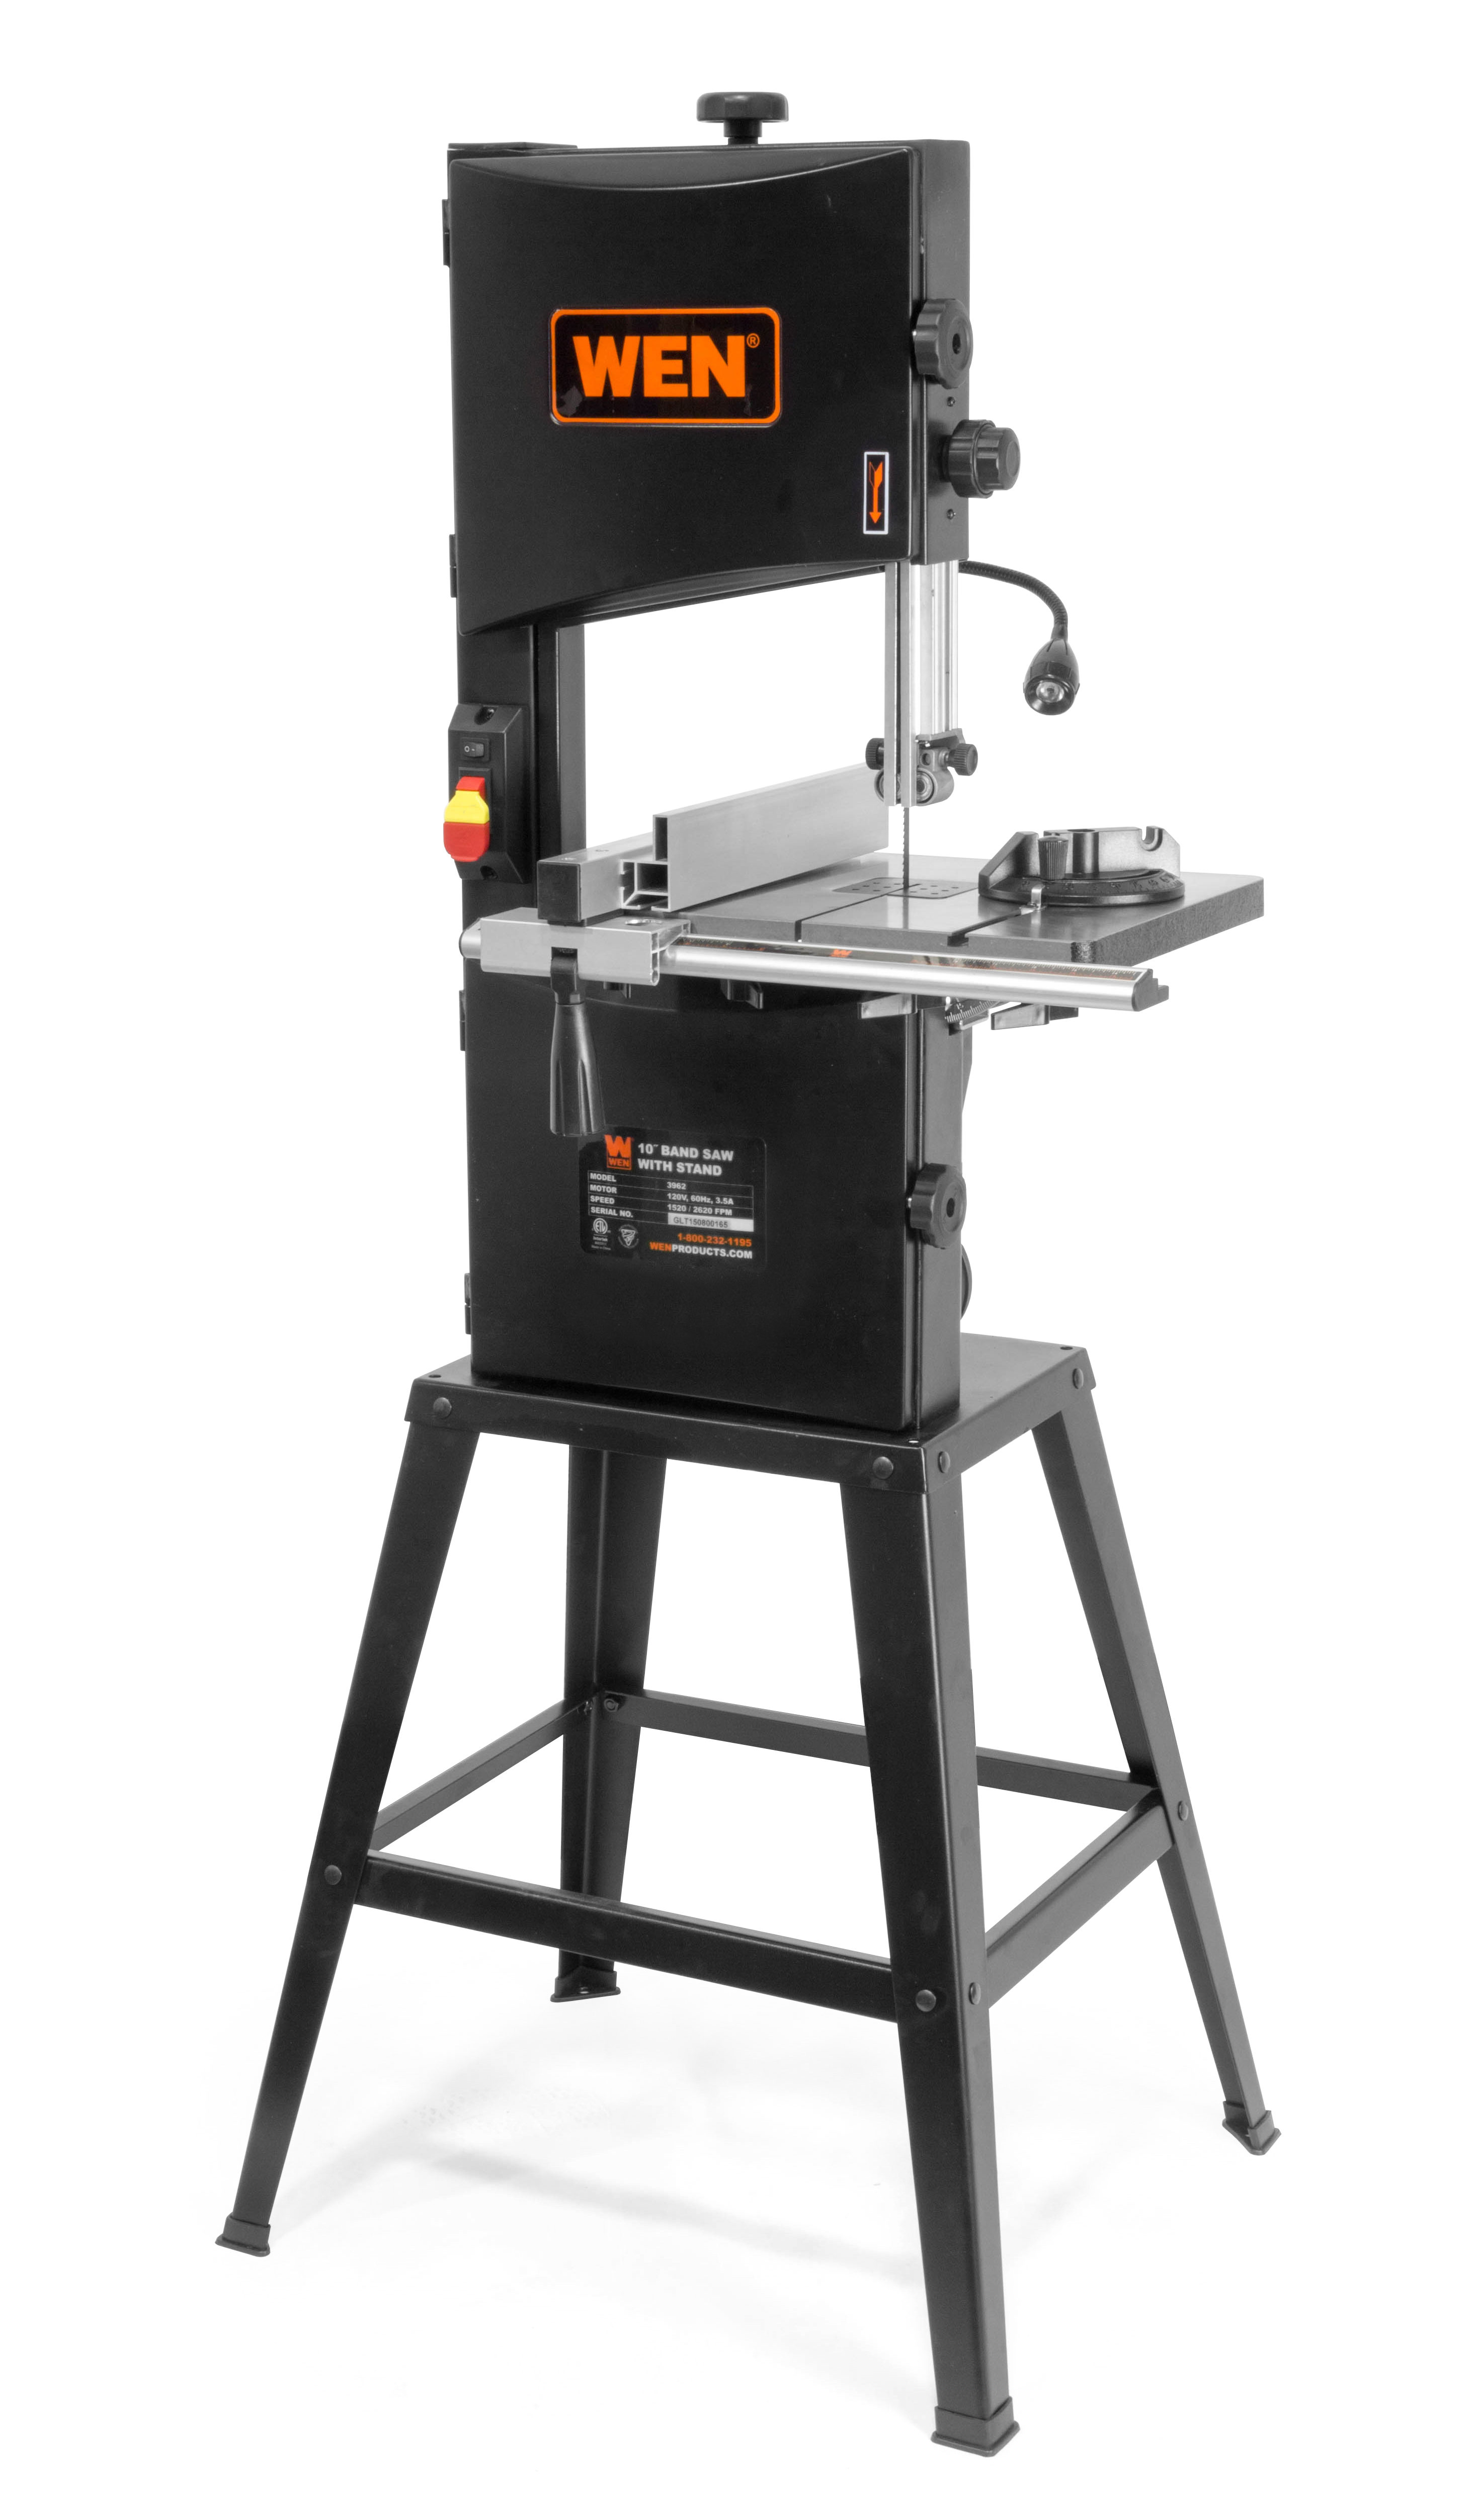 "WEN 10"" Two-Speed Band Saw with Stand and Worklight by WEN"